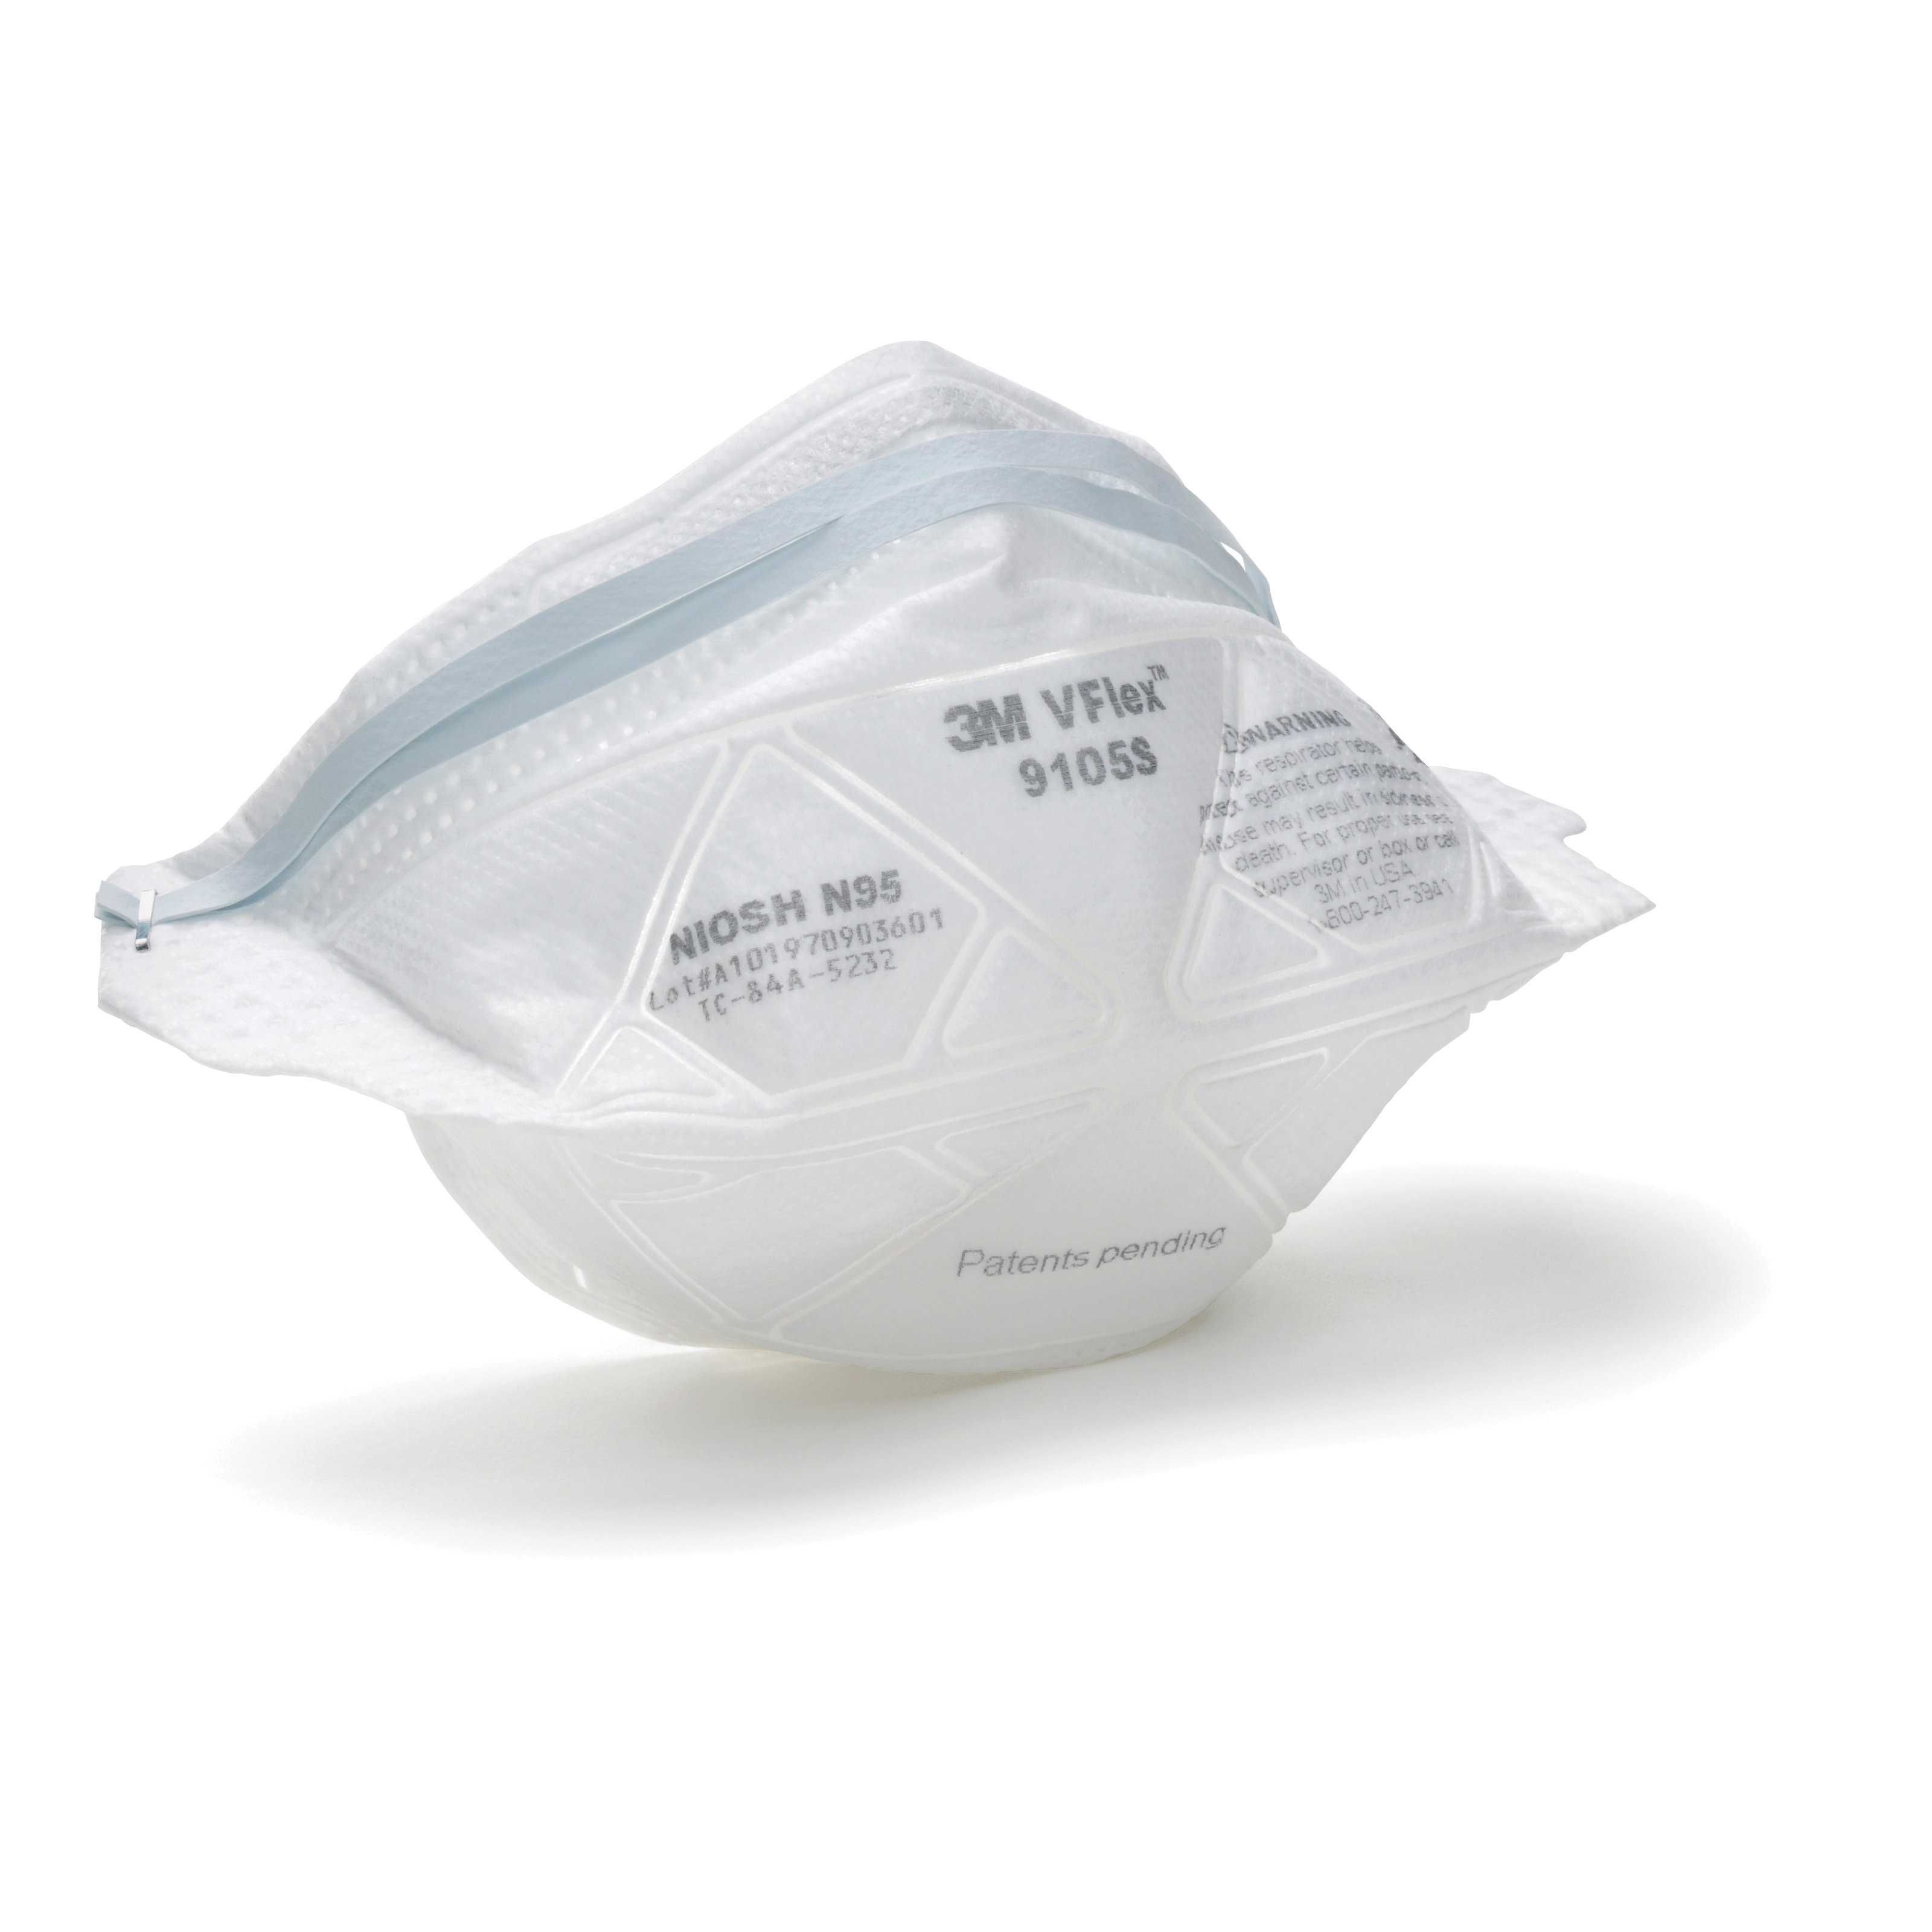 3M™ VFlex™ 051131-17394 Disposable Flat Fold Particulate Respirator, S, Resists: Certain Non-Oil Based Particles, Airborne Contaminants, Dust and other Particles